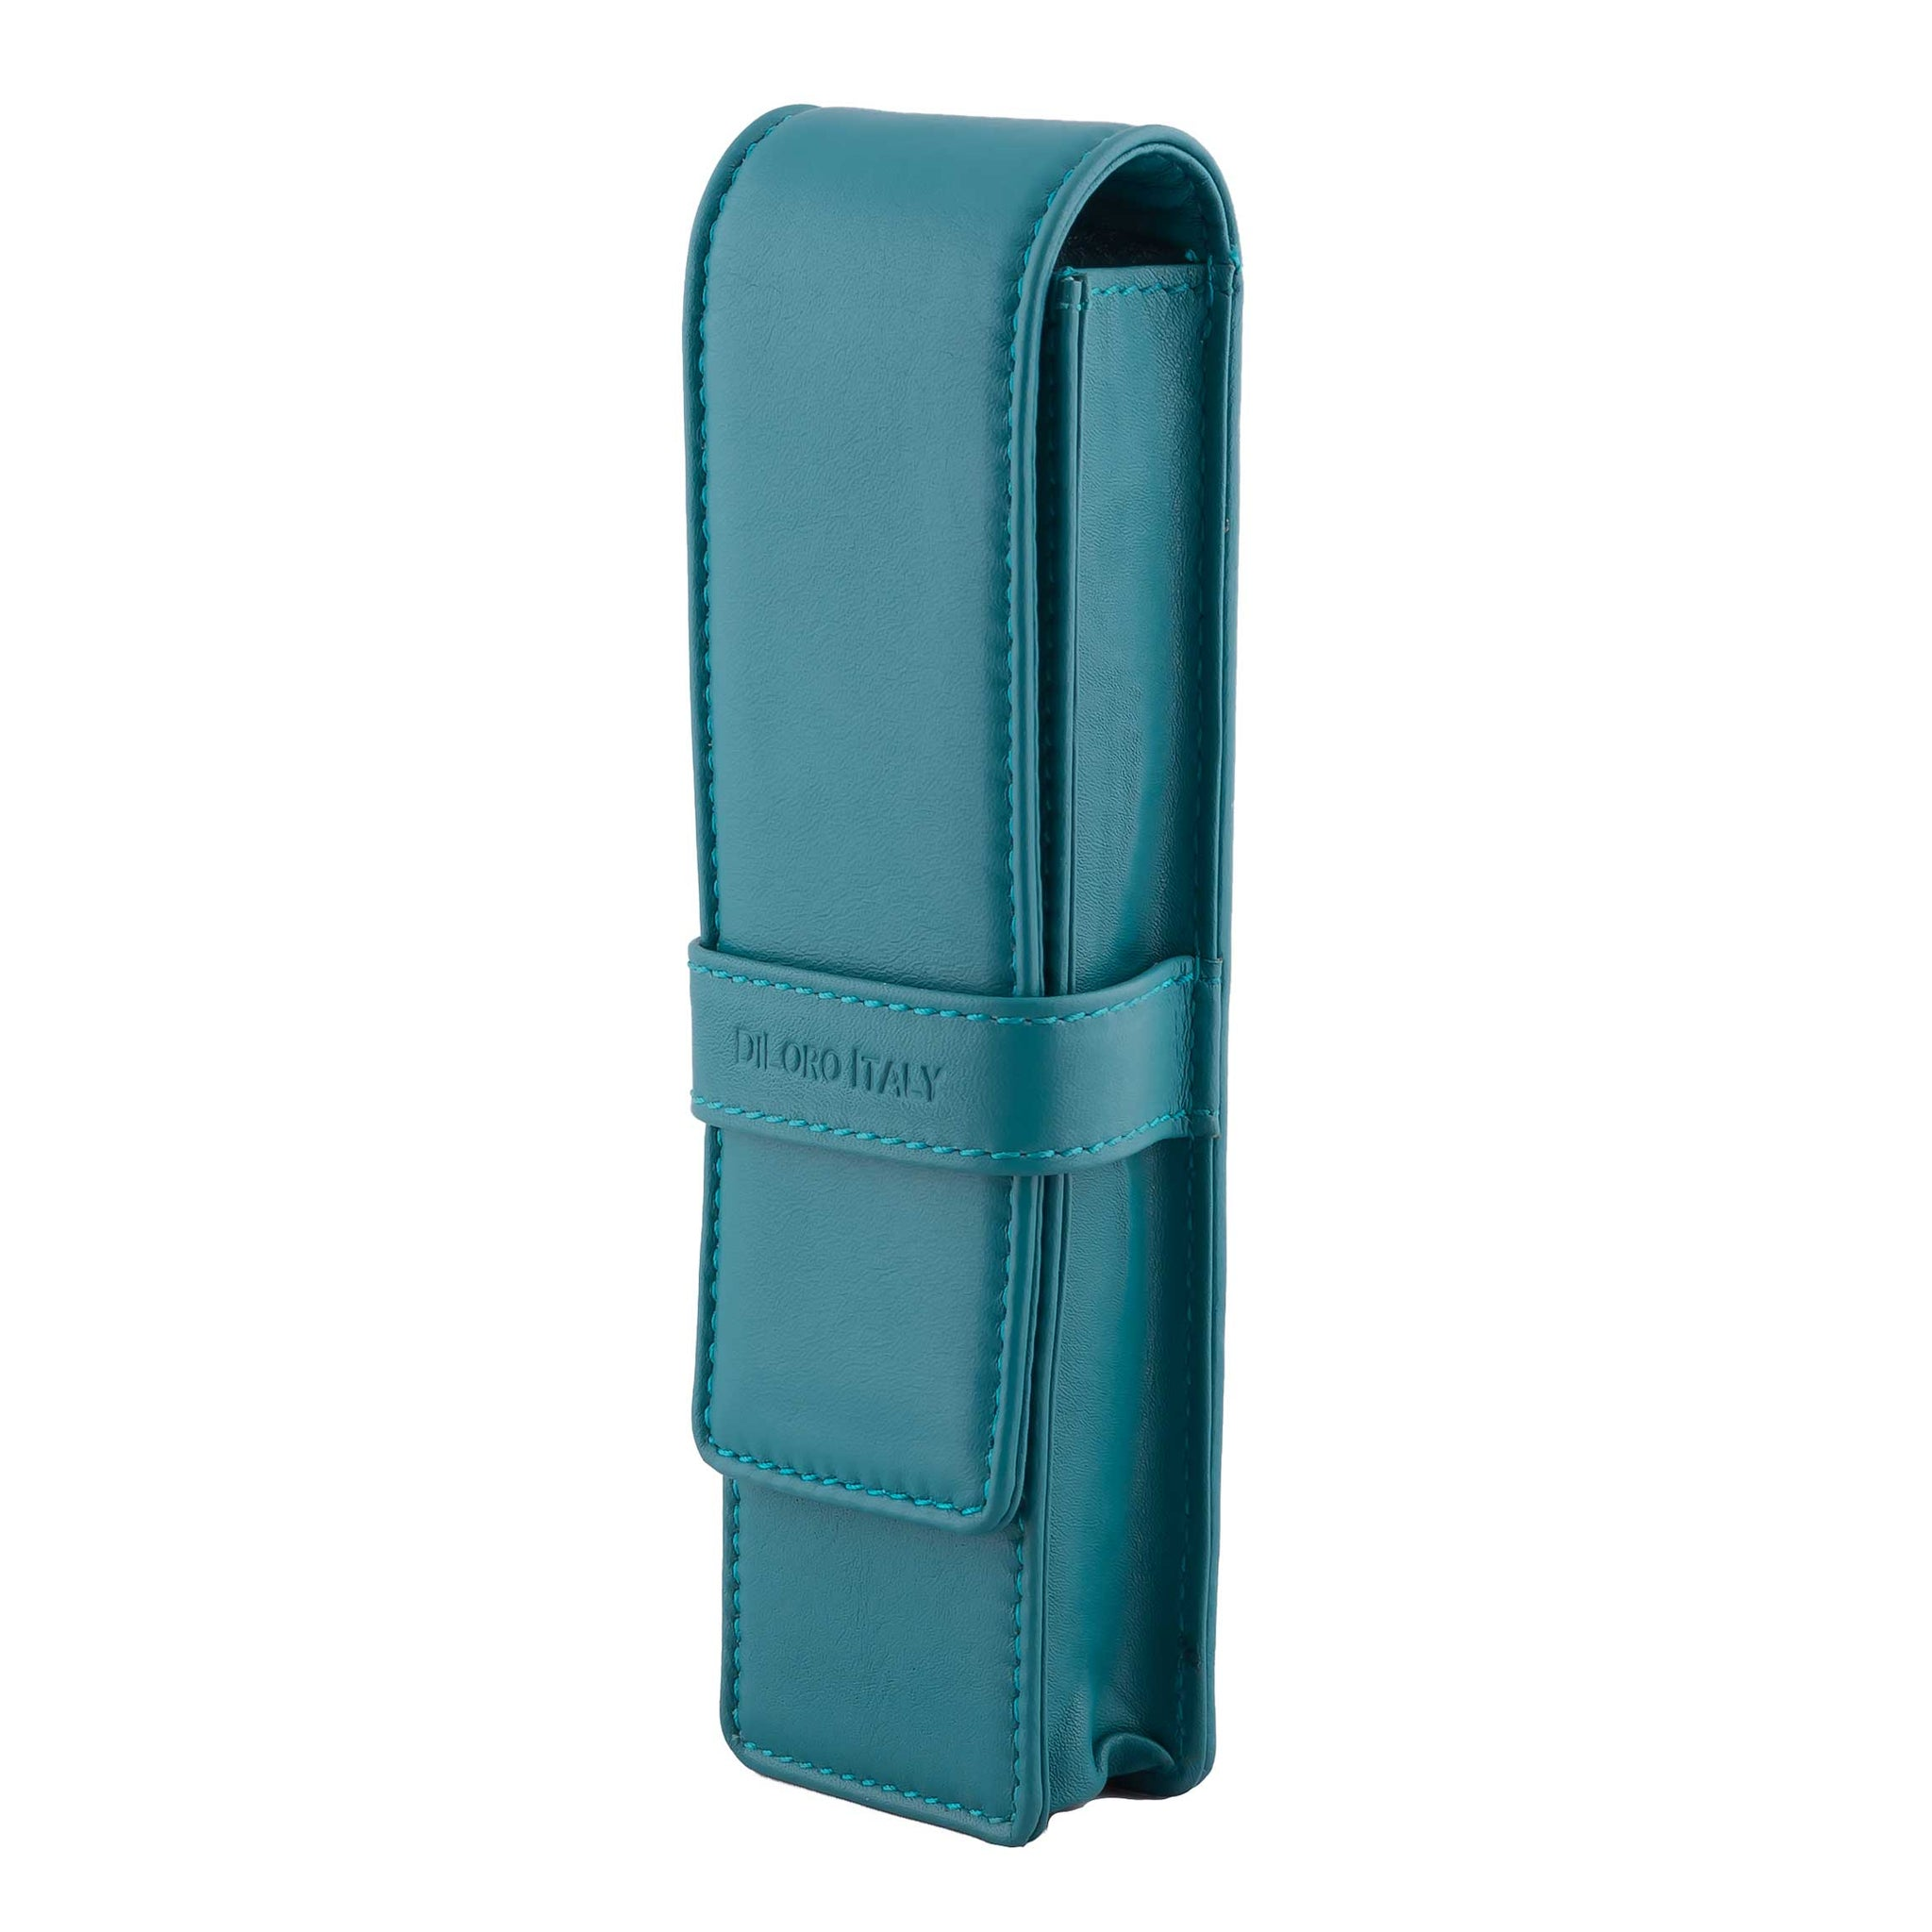 DiLoro Double Pen Case Holder in Top Quality, Full Grain Nappa Leather - Turquoise Green